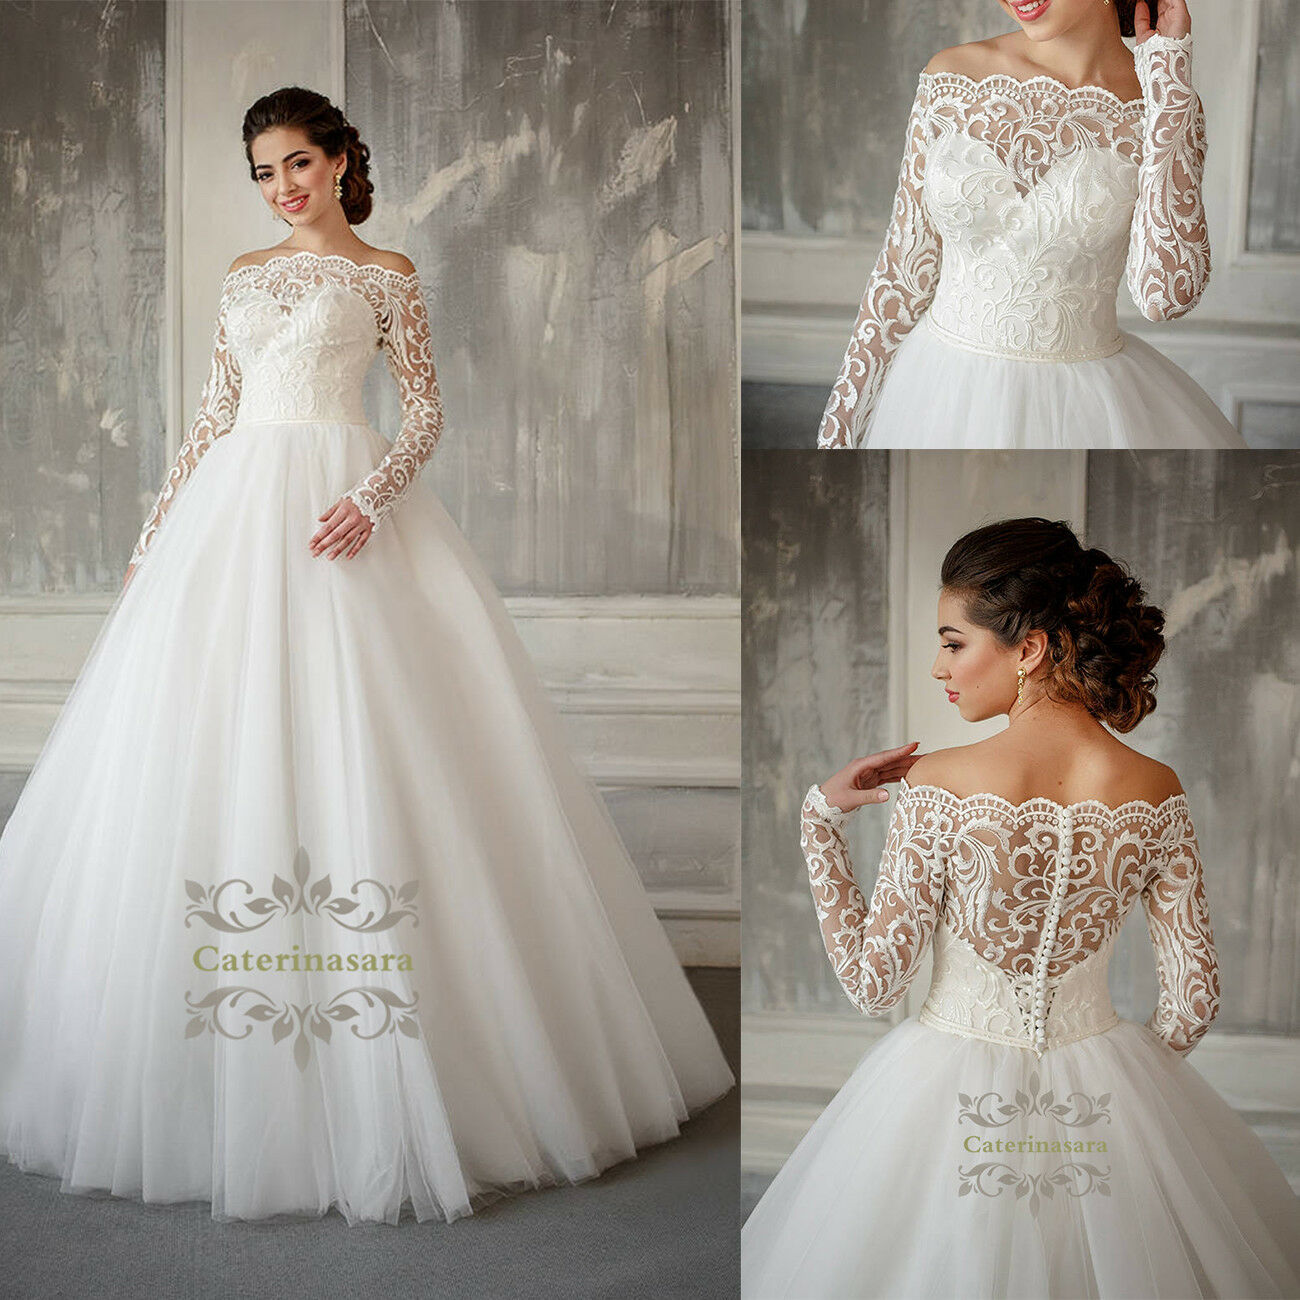 details about custom made lace ball wedding dress illusion long sleeves  pregnant bridal gown